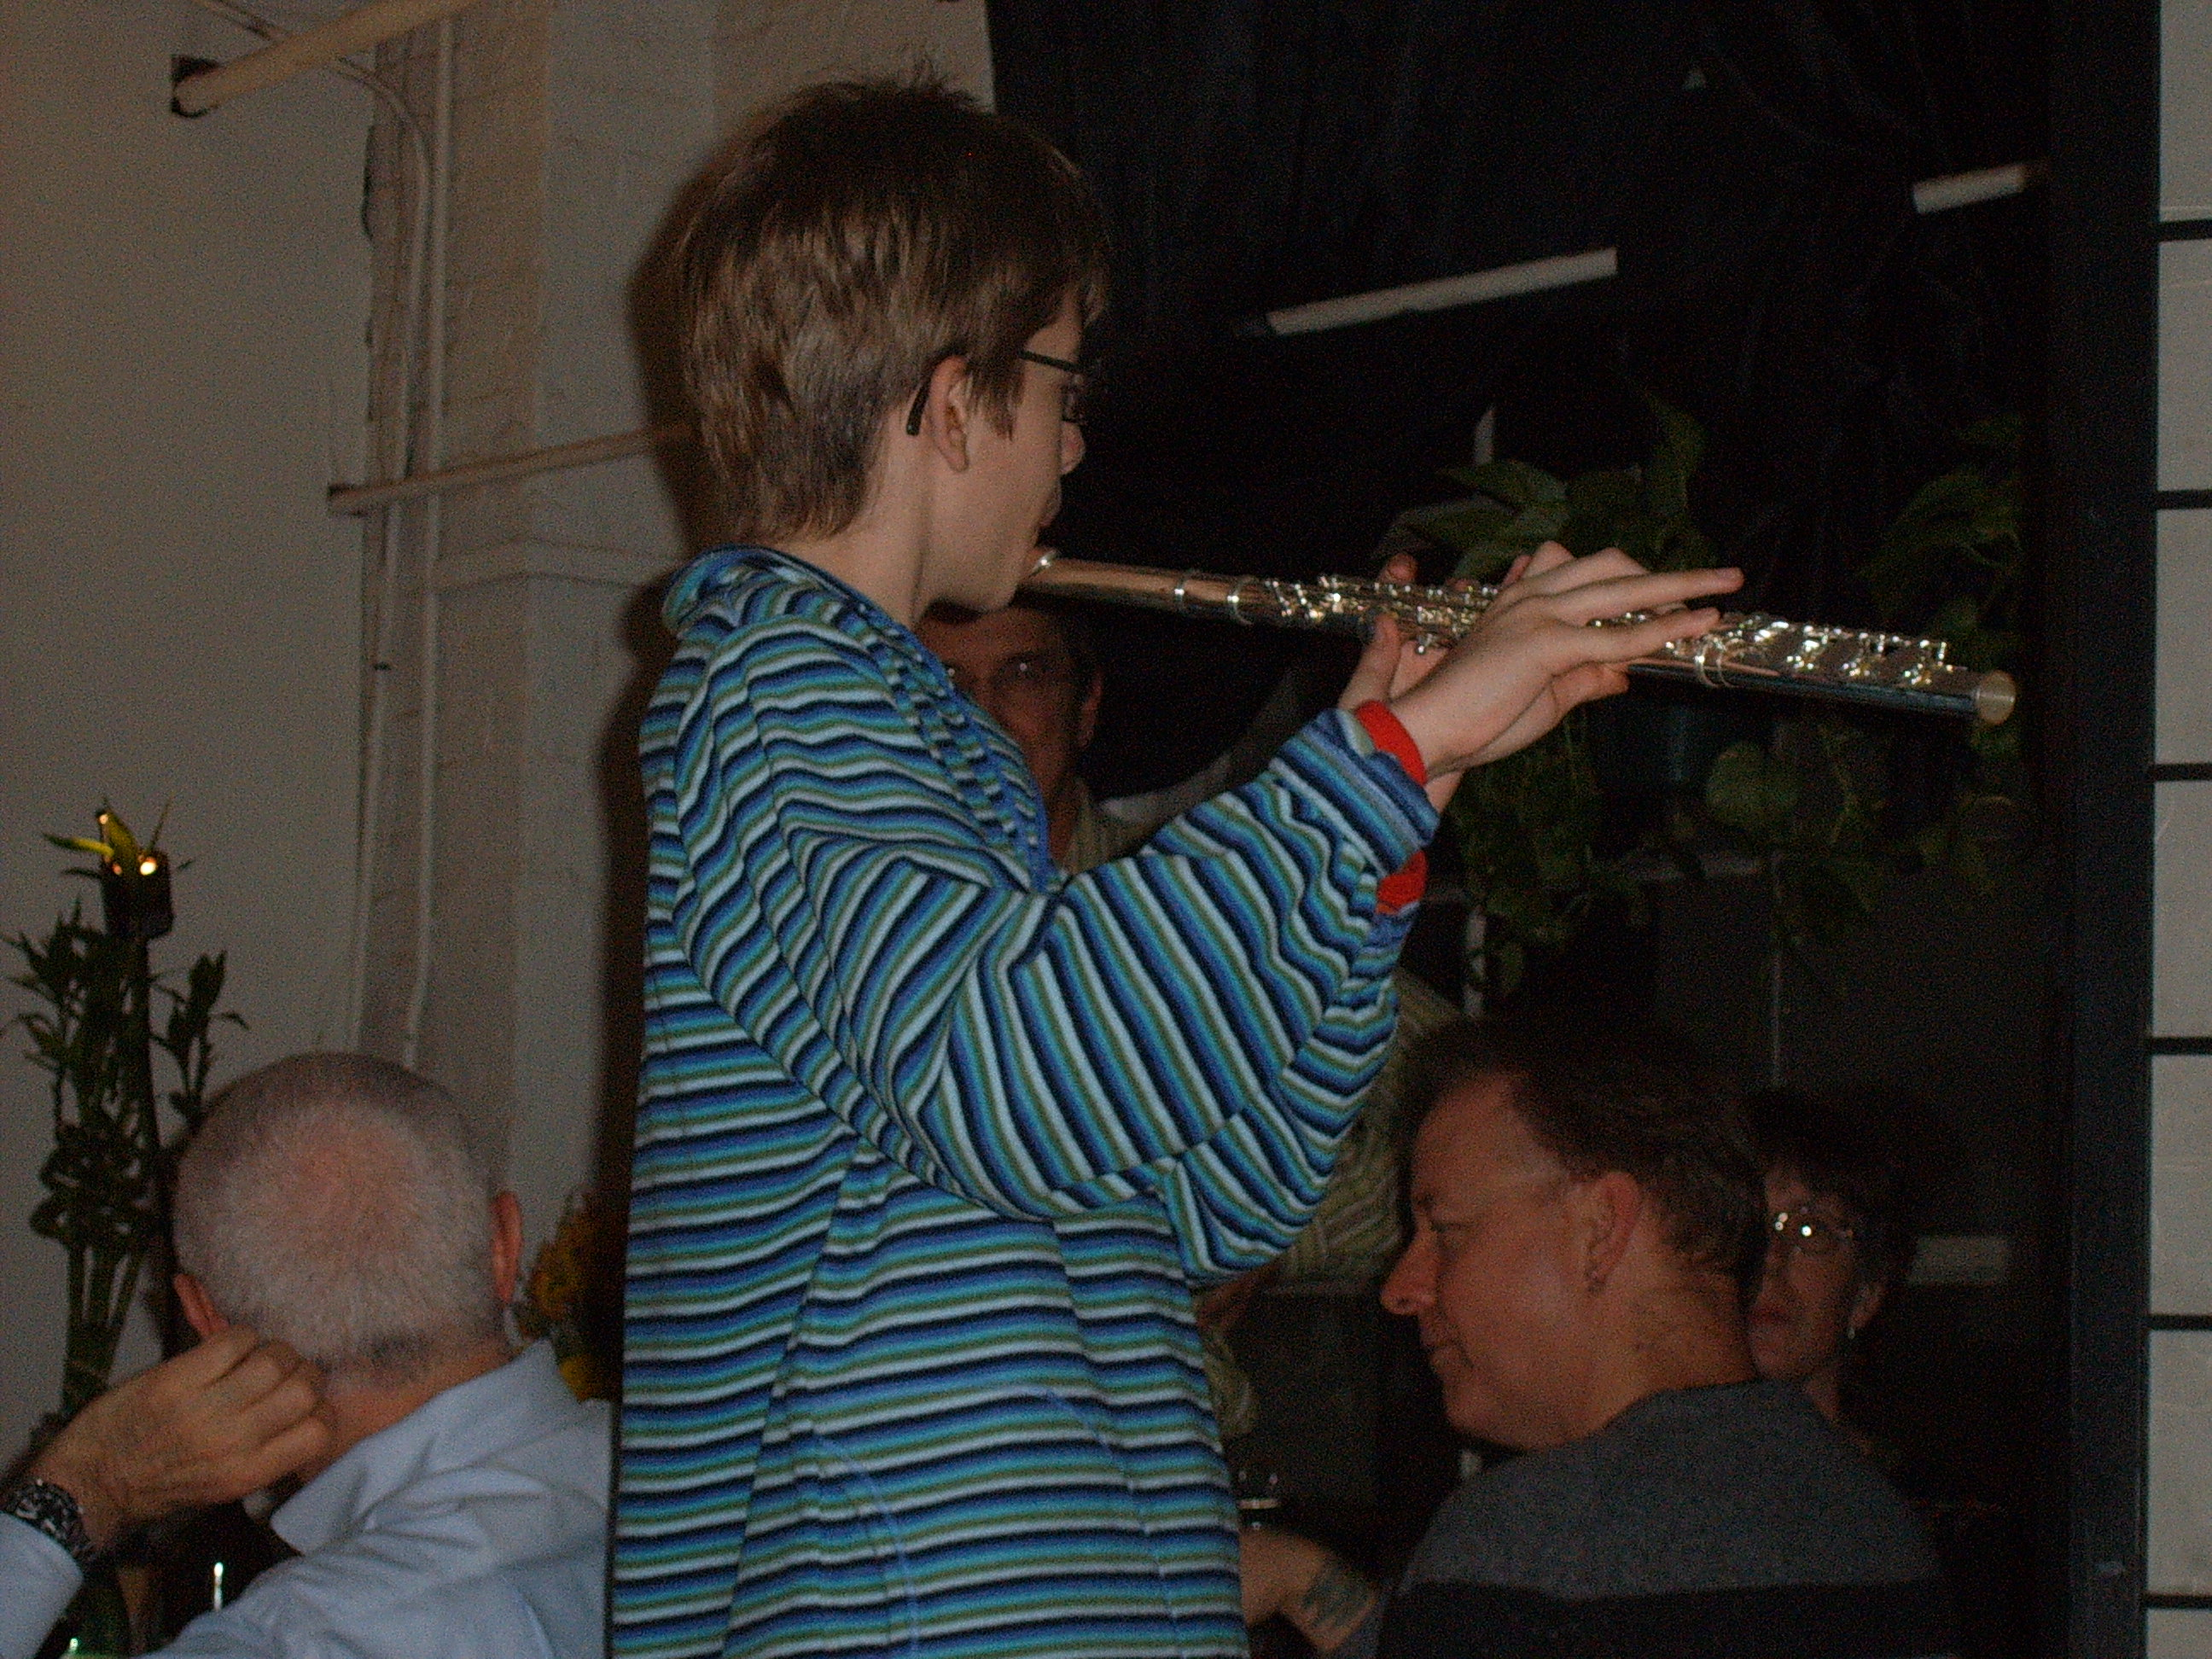 Cousin Ian Edgar plays the flute at Thanksgiving 2006 in NYC--his father Steve Edgar looks on